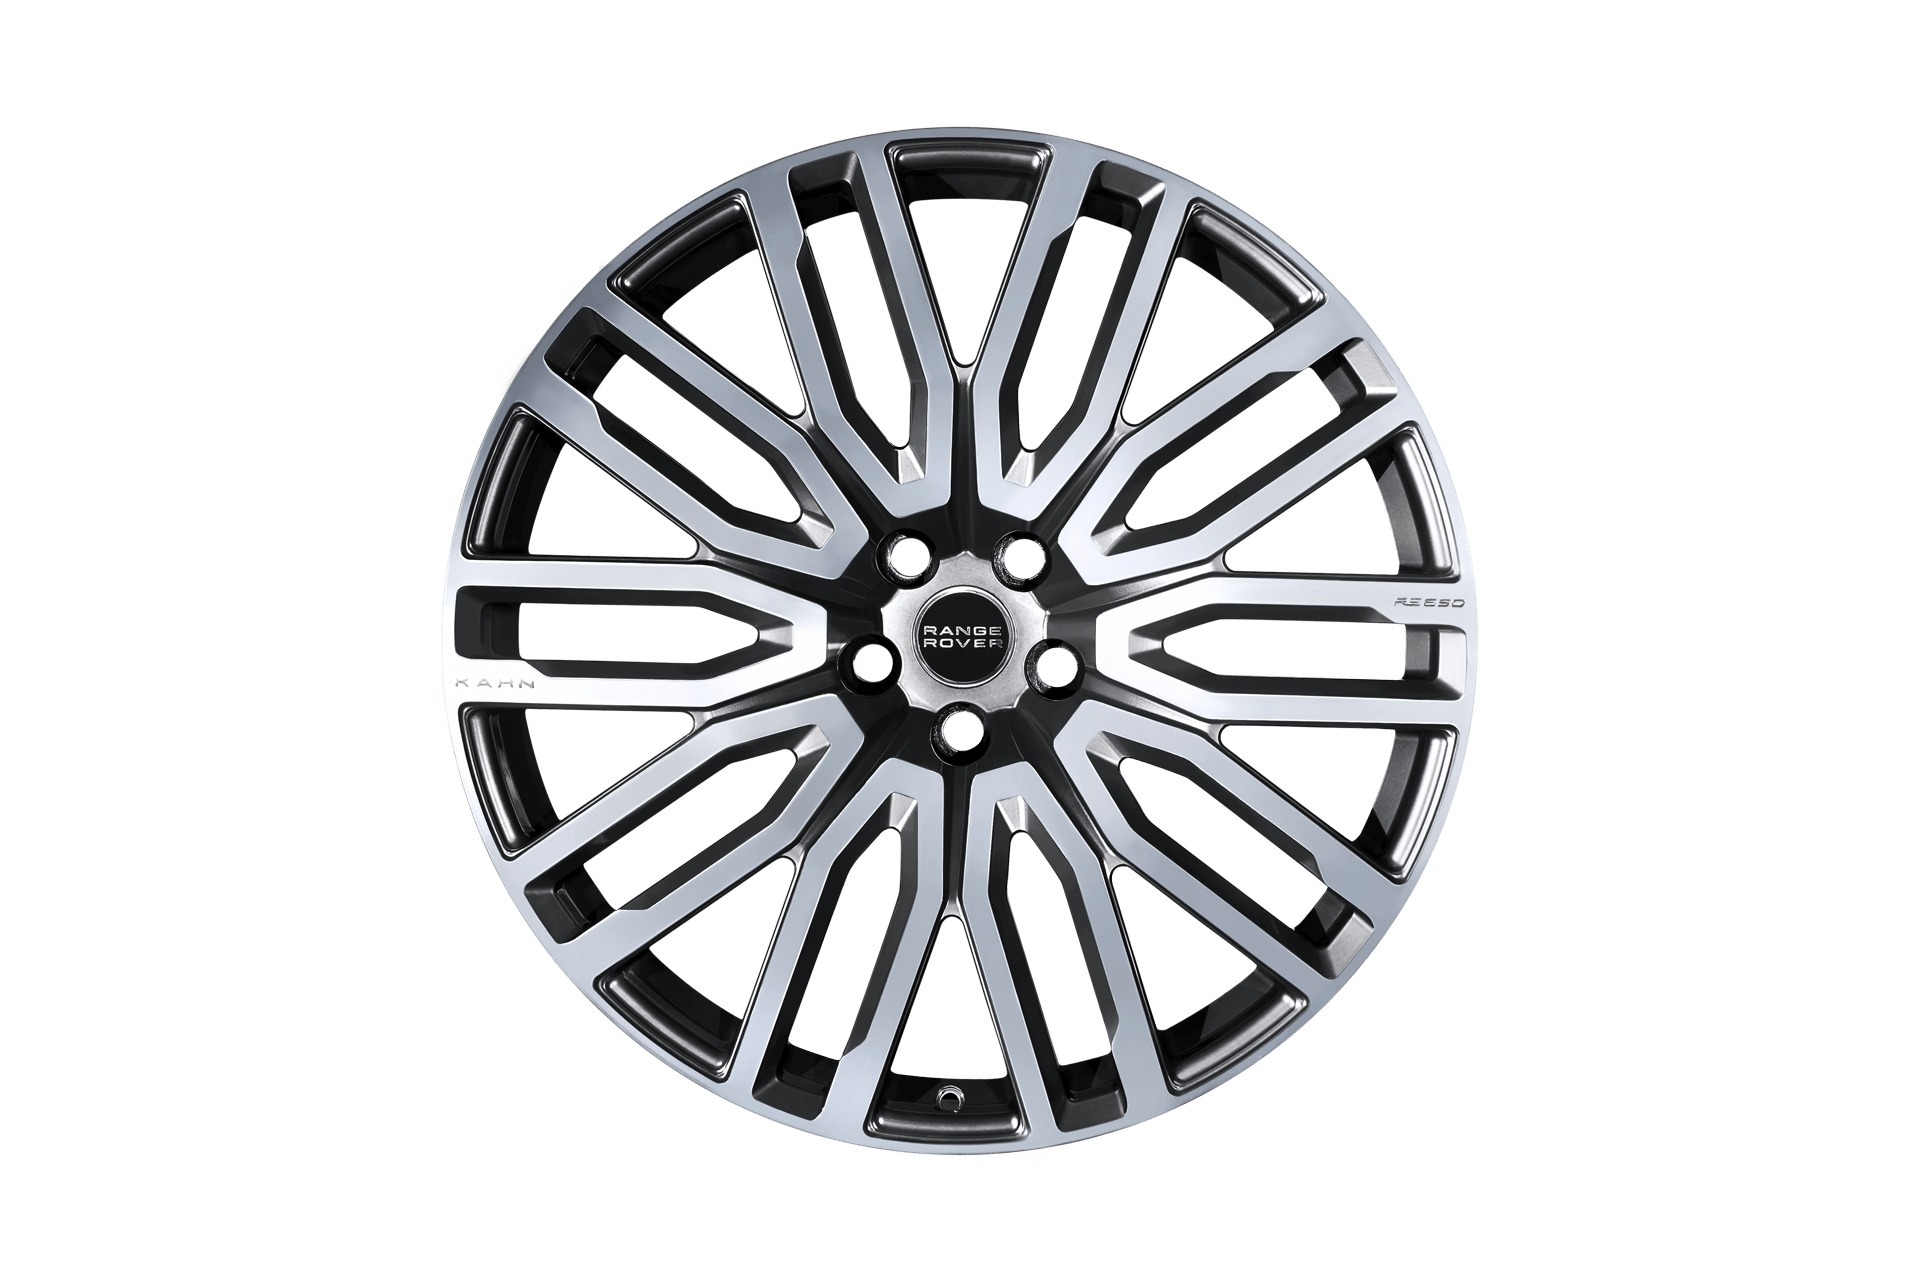 Range Rover Sport (2013-2018) Pace Car RS650 Forged Light Alloy Wheels